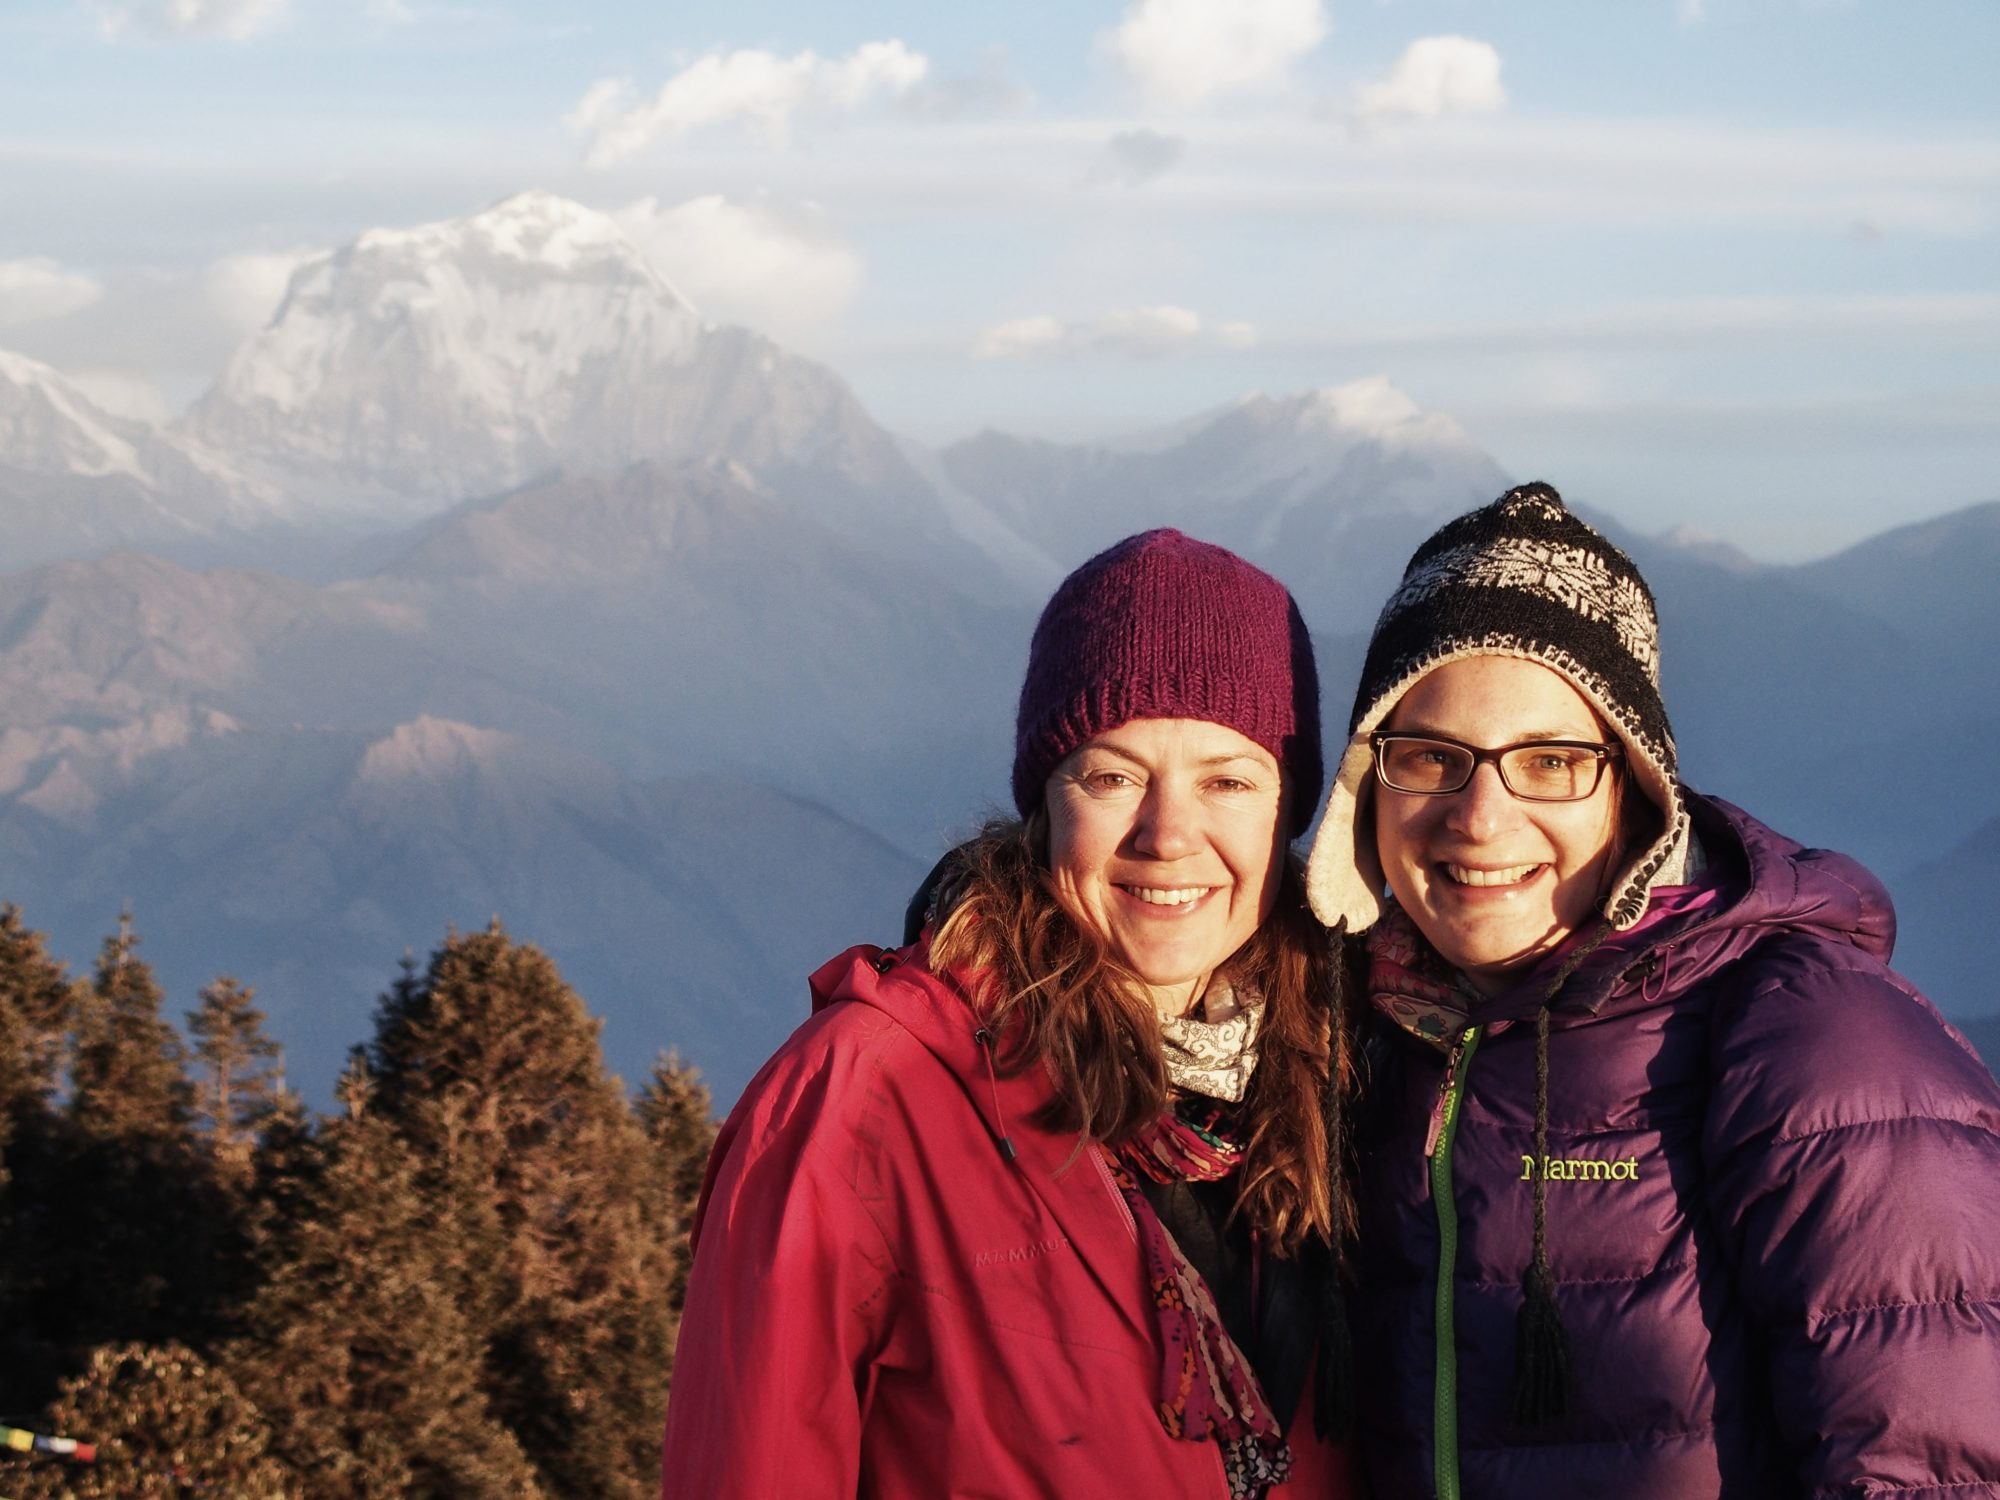 Happiness! Sonnenaufgang am Poon Hill. Annapurna